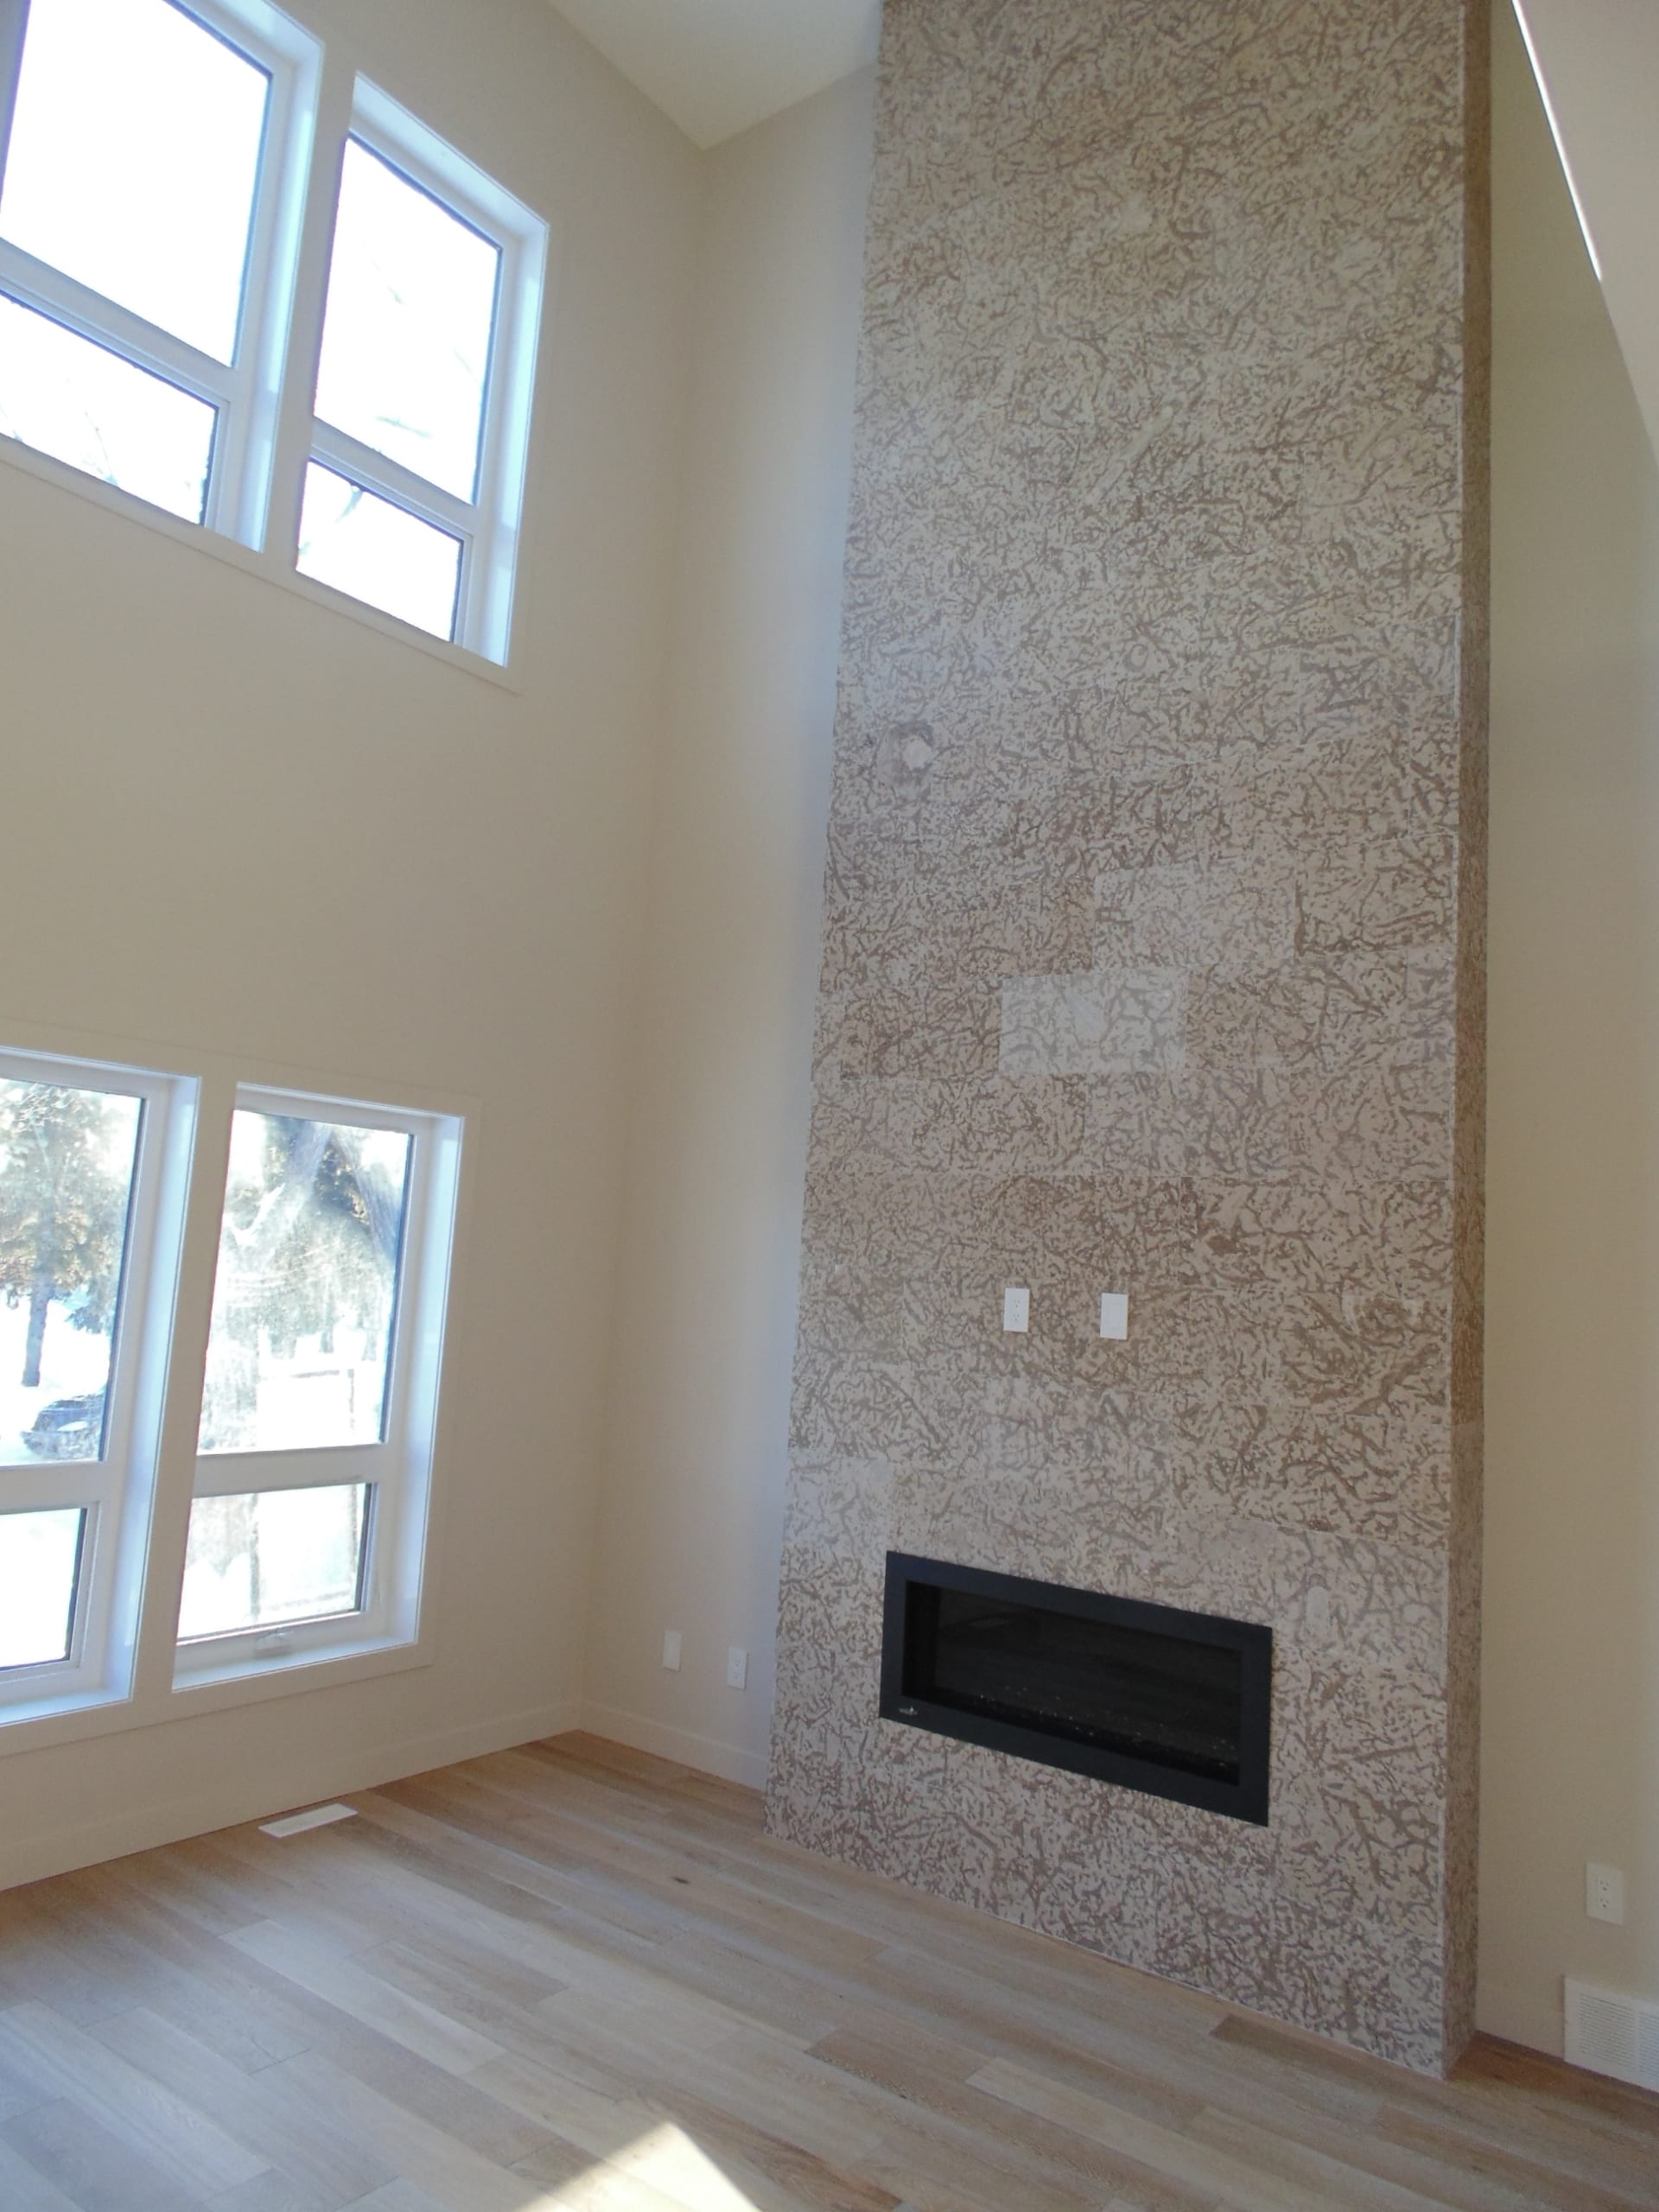 Fireplace in a custom home